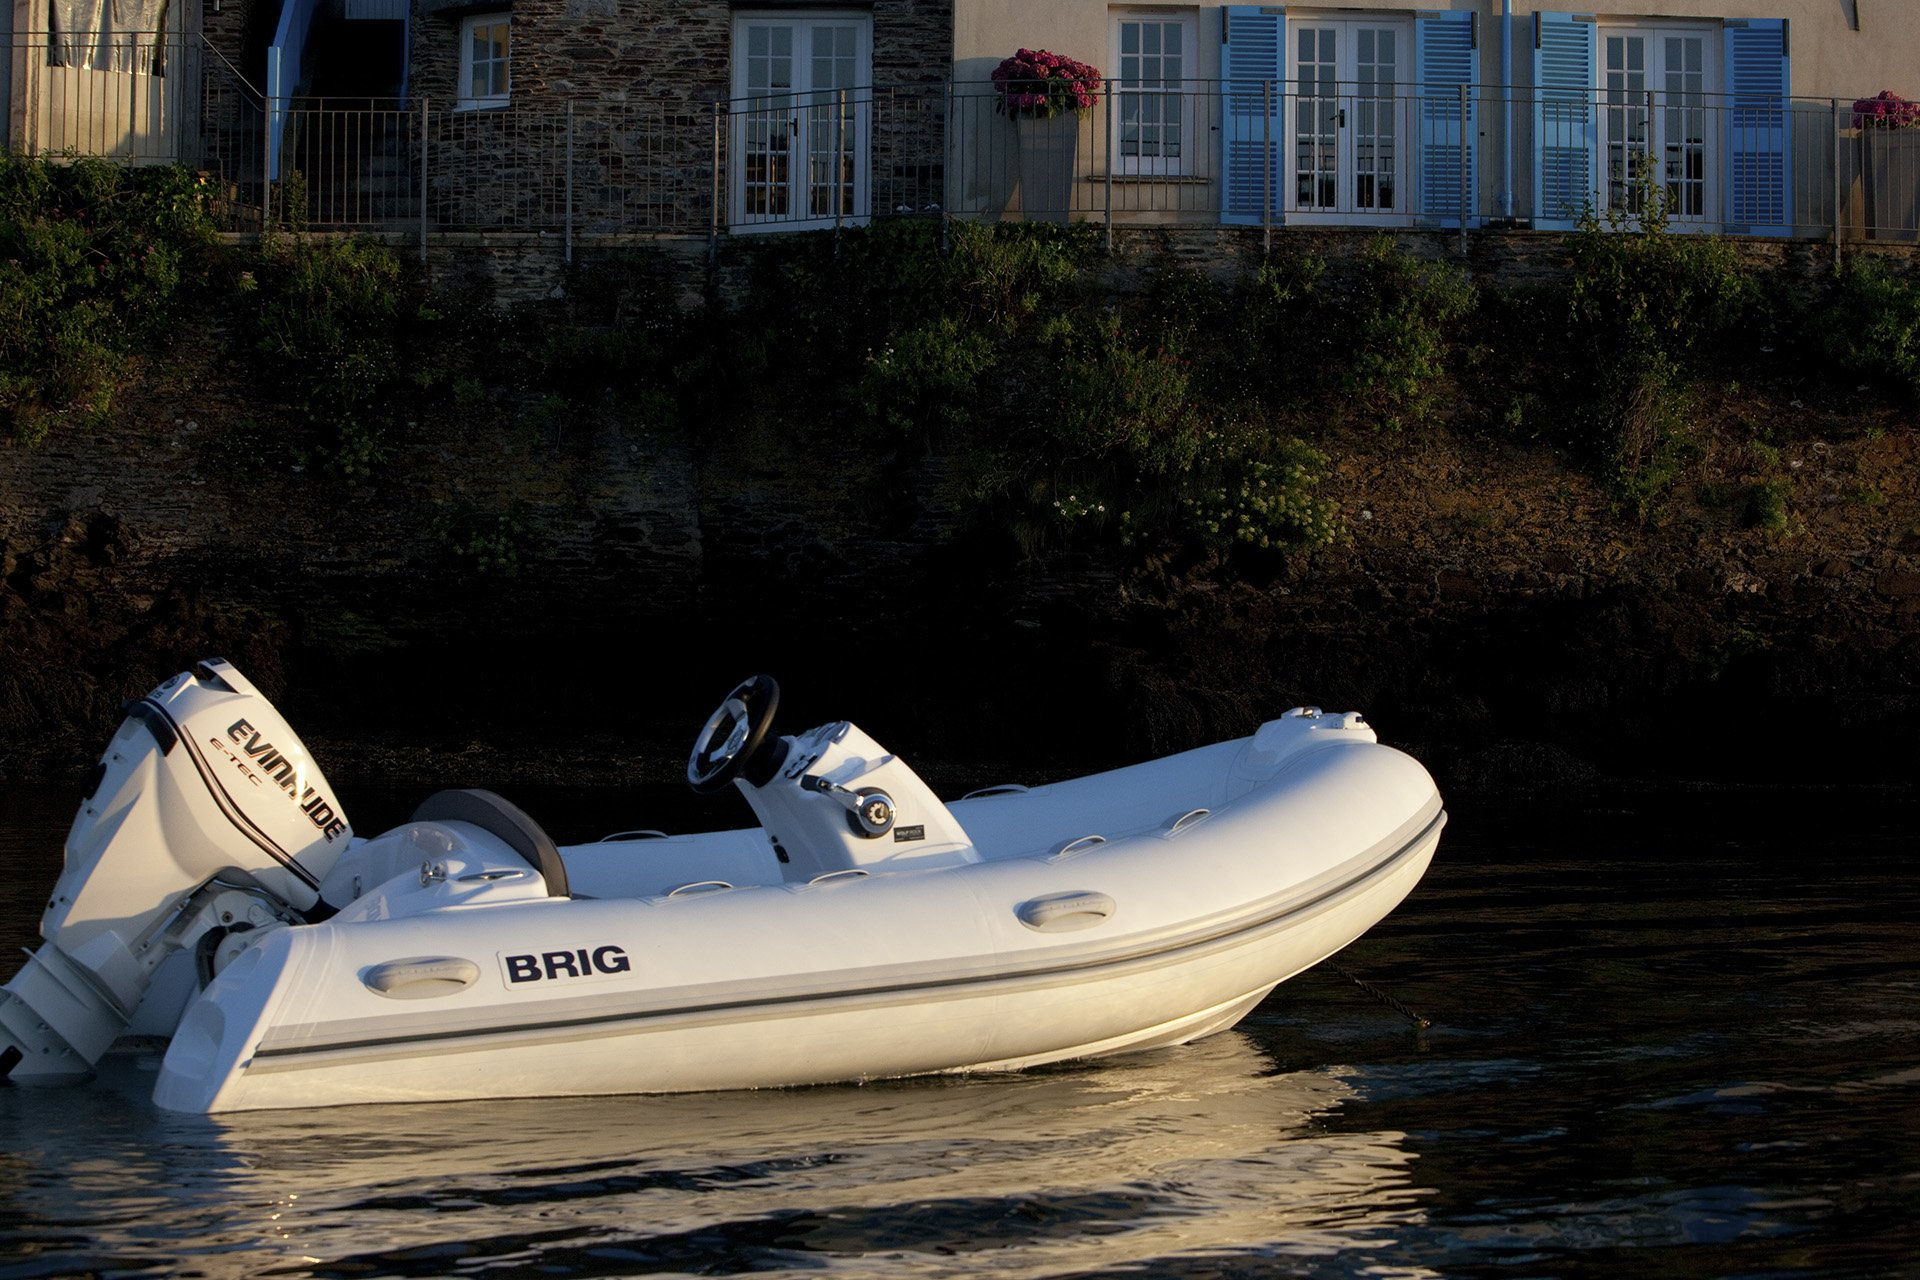 Eagle 340 Inflatable Boat